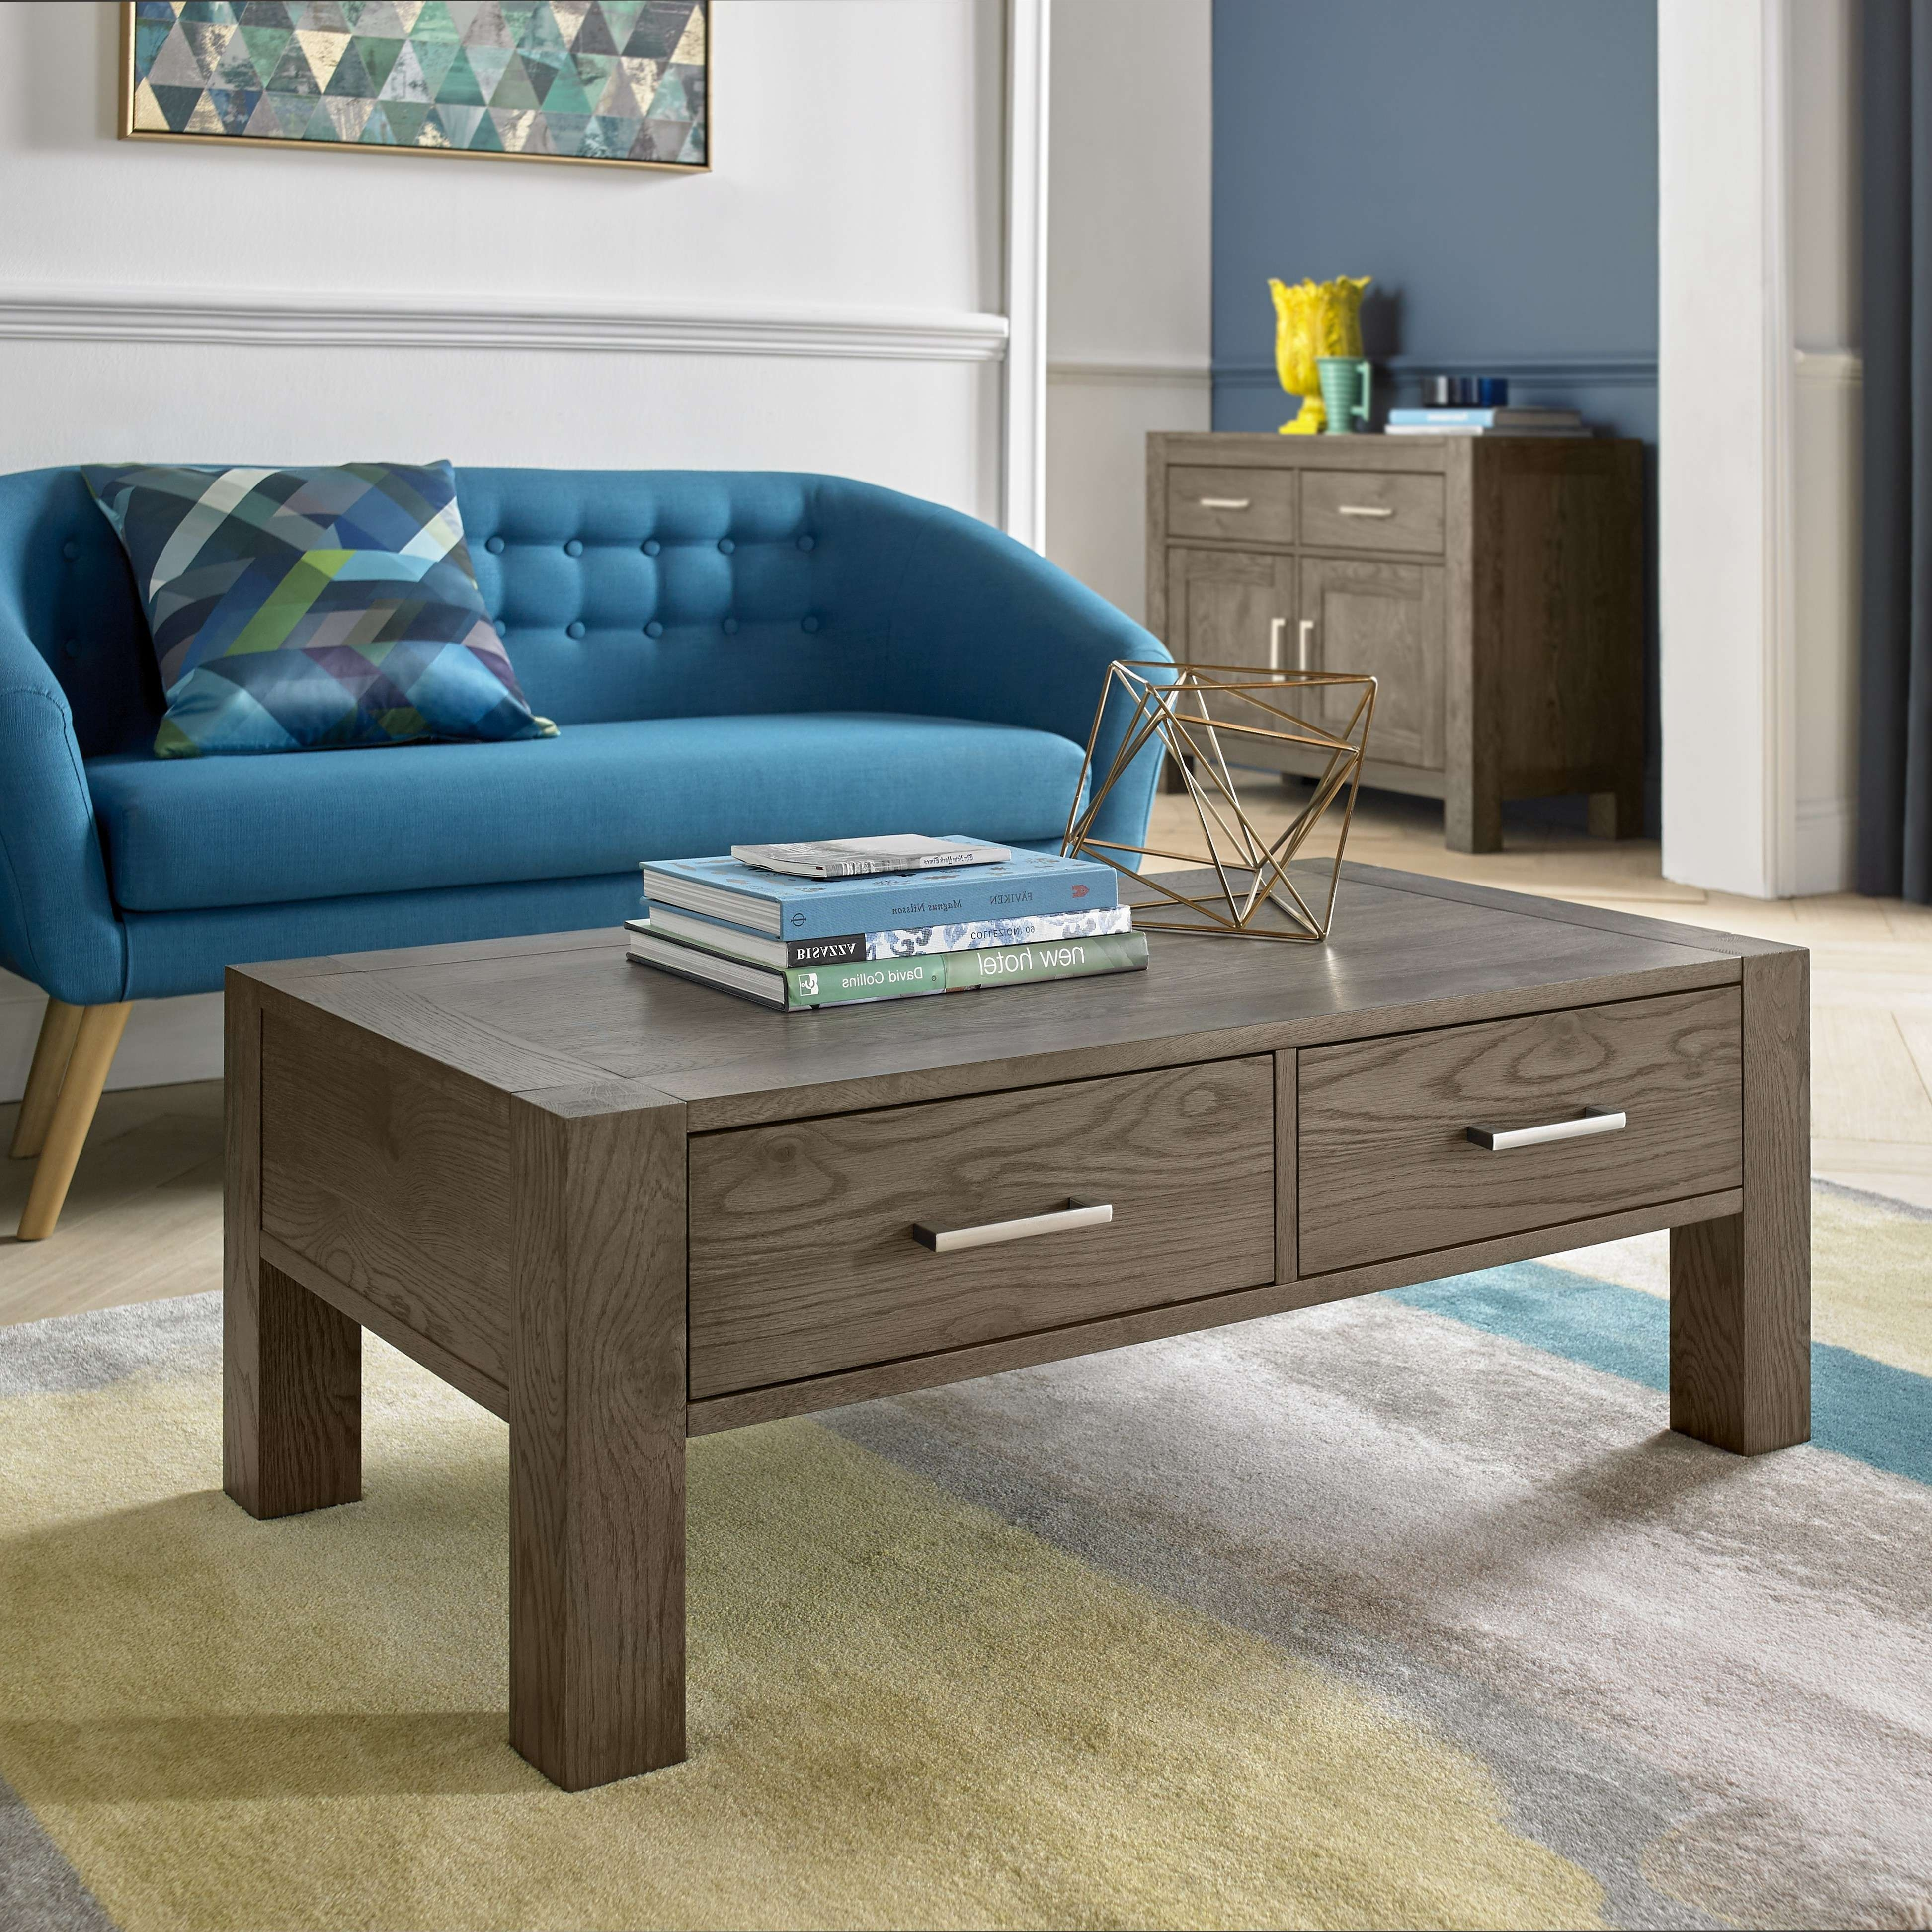 Bentley Designs Turin Dark Oak Coffee Table With Drawers – Style Throughout Most Up To Date Dark Oak Coffee Tables (View 9 of 20)